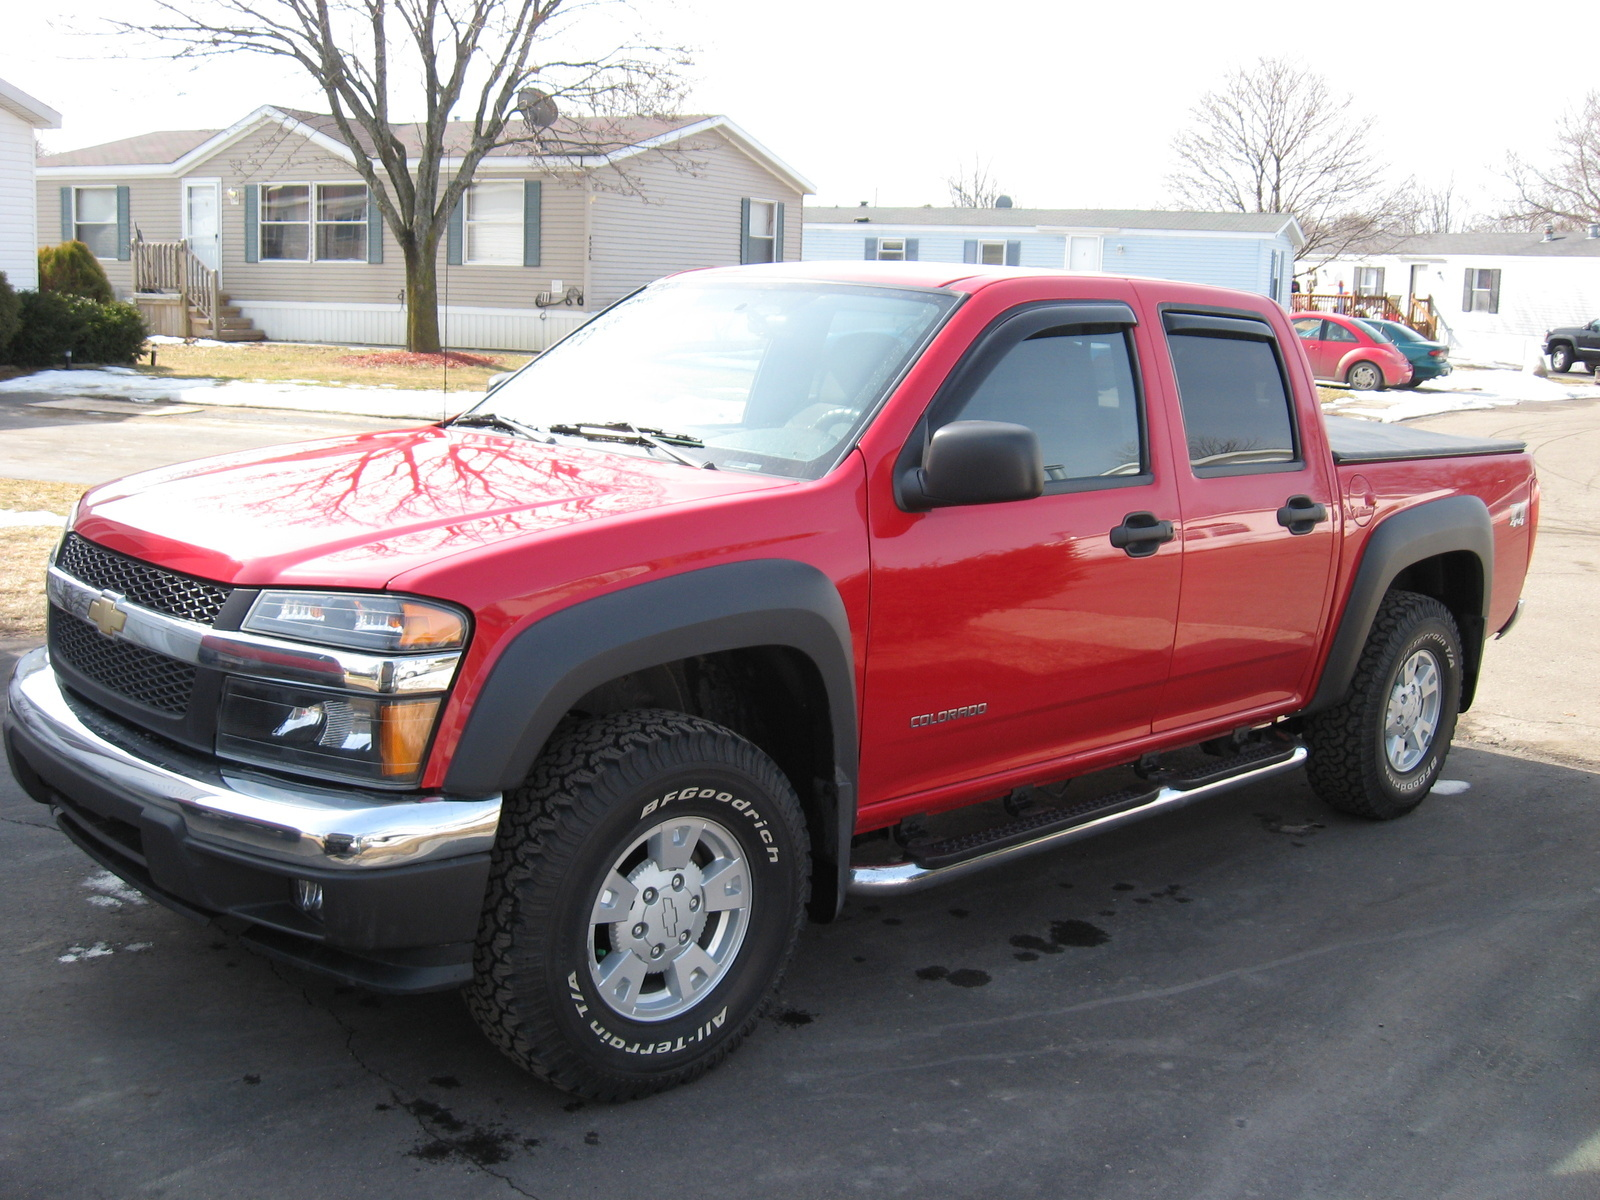 hight resolution of gmc canyon wiring diagram simple wiring schema gmc canyon crew cab gmc canyon schematic